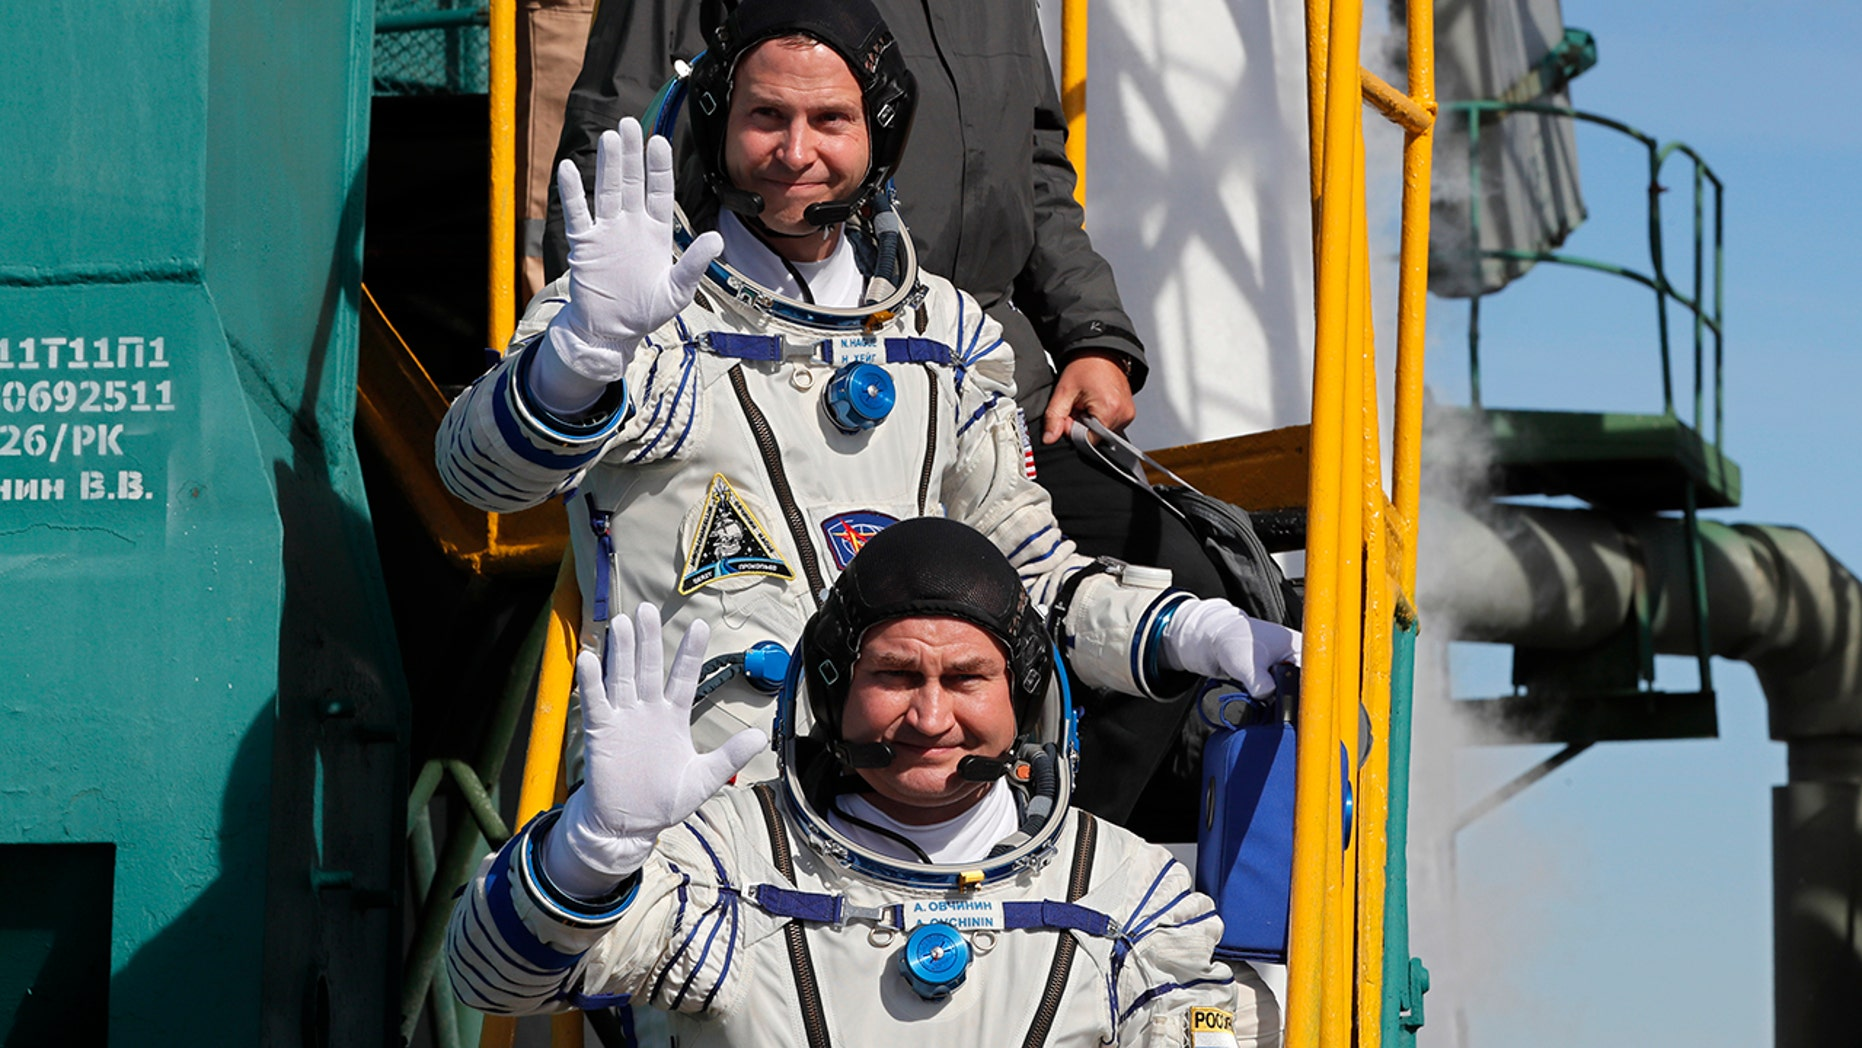 Astronauts safe after failed rocket launch, emergency bail-out